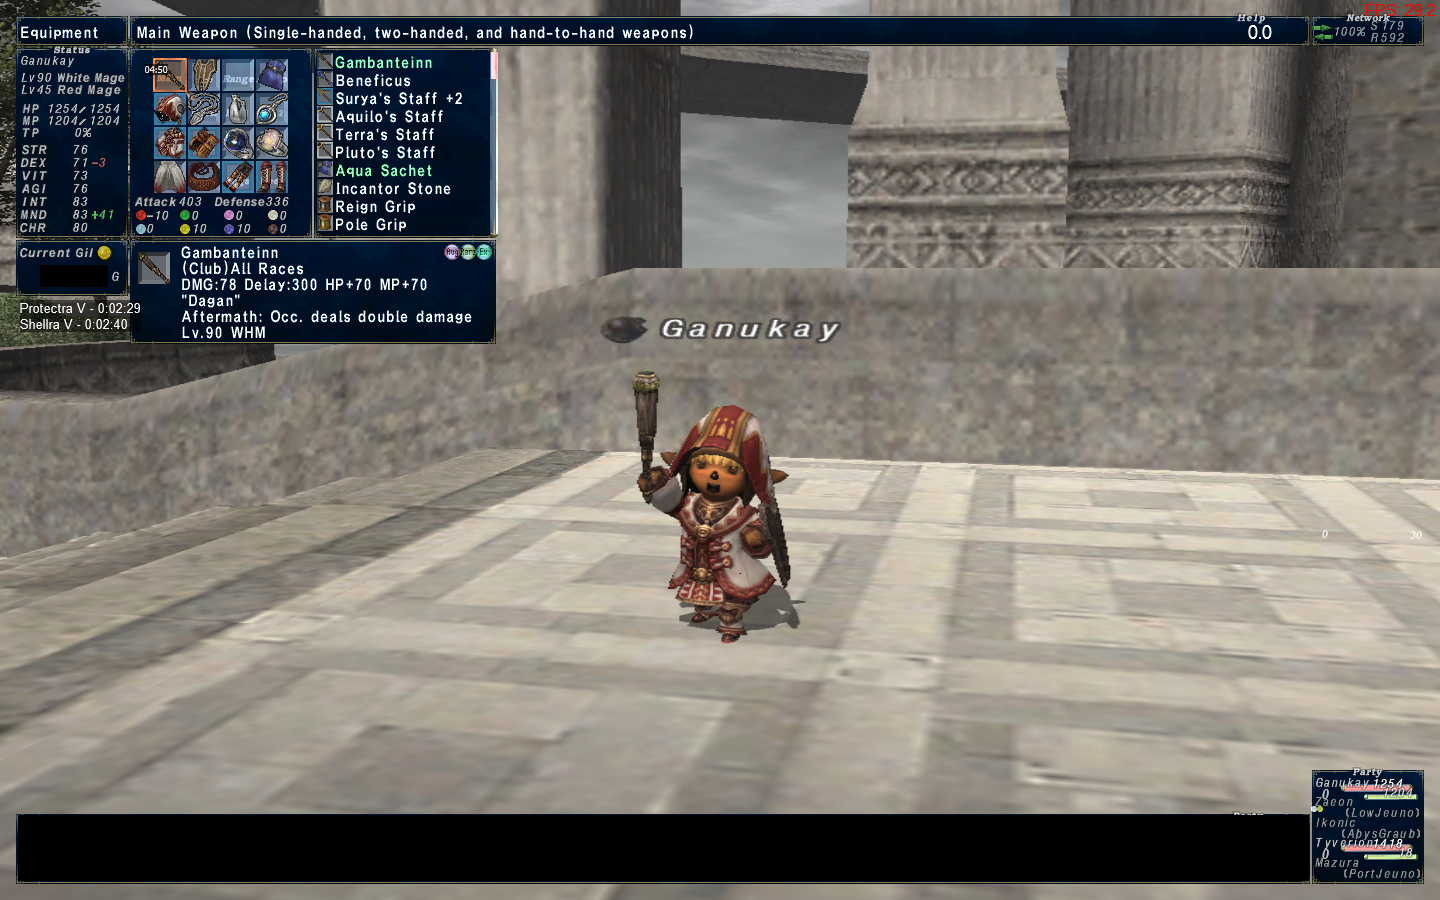 ganukay ffxi will would guess this they compensate likeley makeing destroyable totems most drawback weak last forever another there aoes whatsoever about what diabio maybe helixeskaustra include completely gets fucked over debuff alot when says weapons release know also have long time wouldnt form never allow said true magian hold breath that